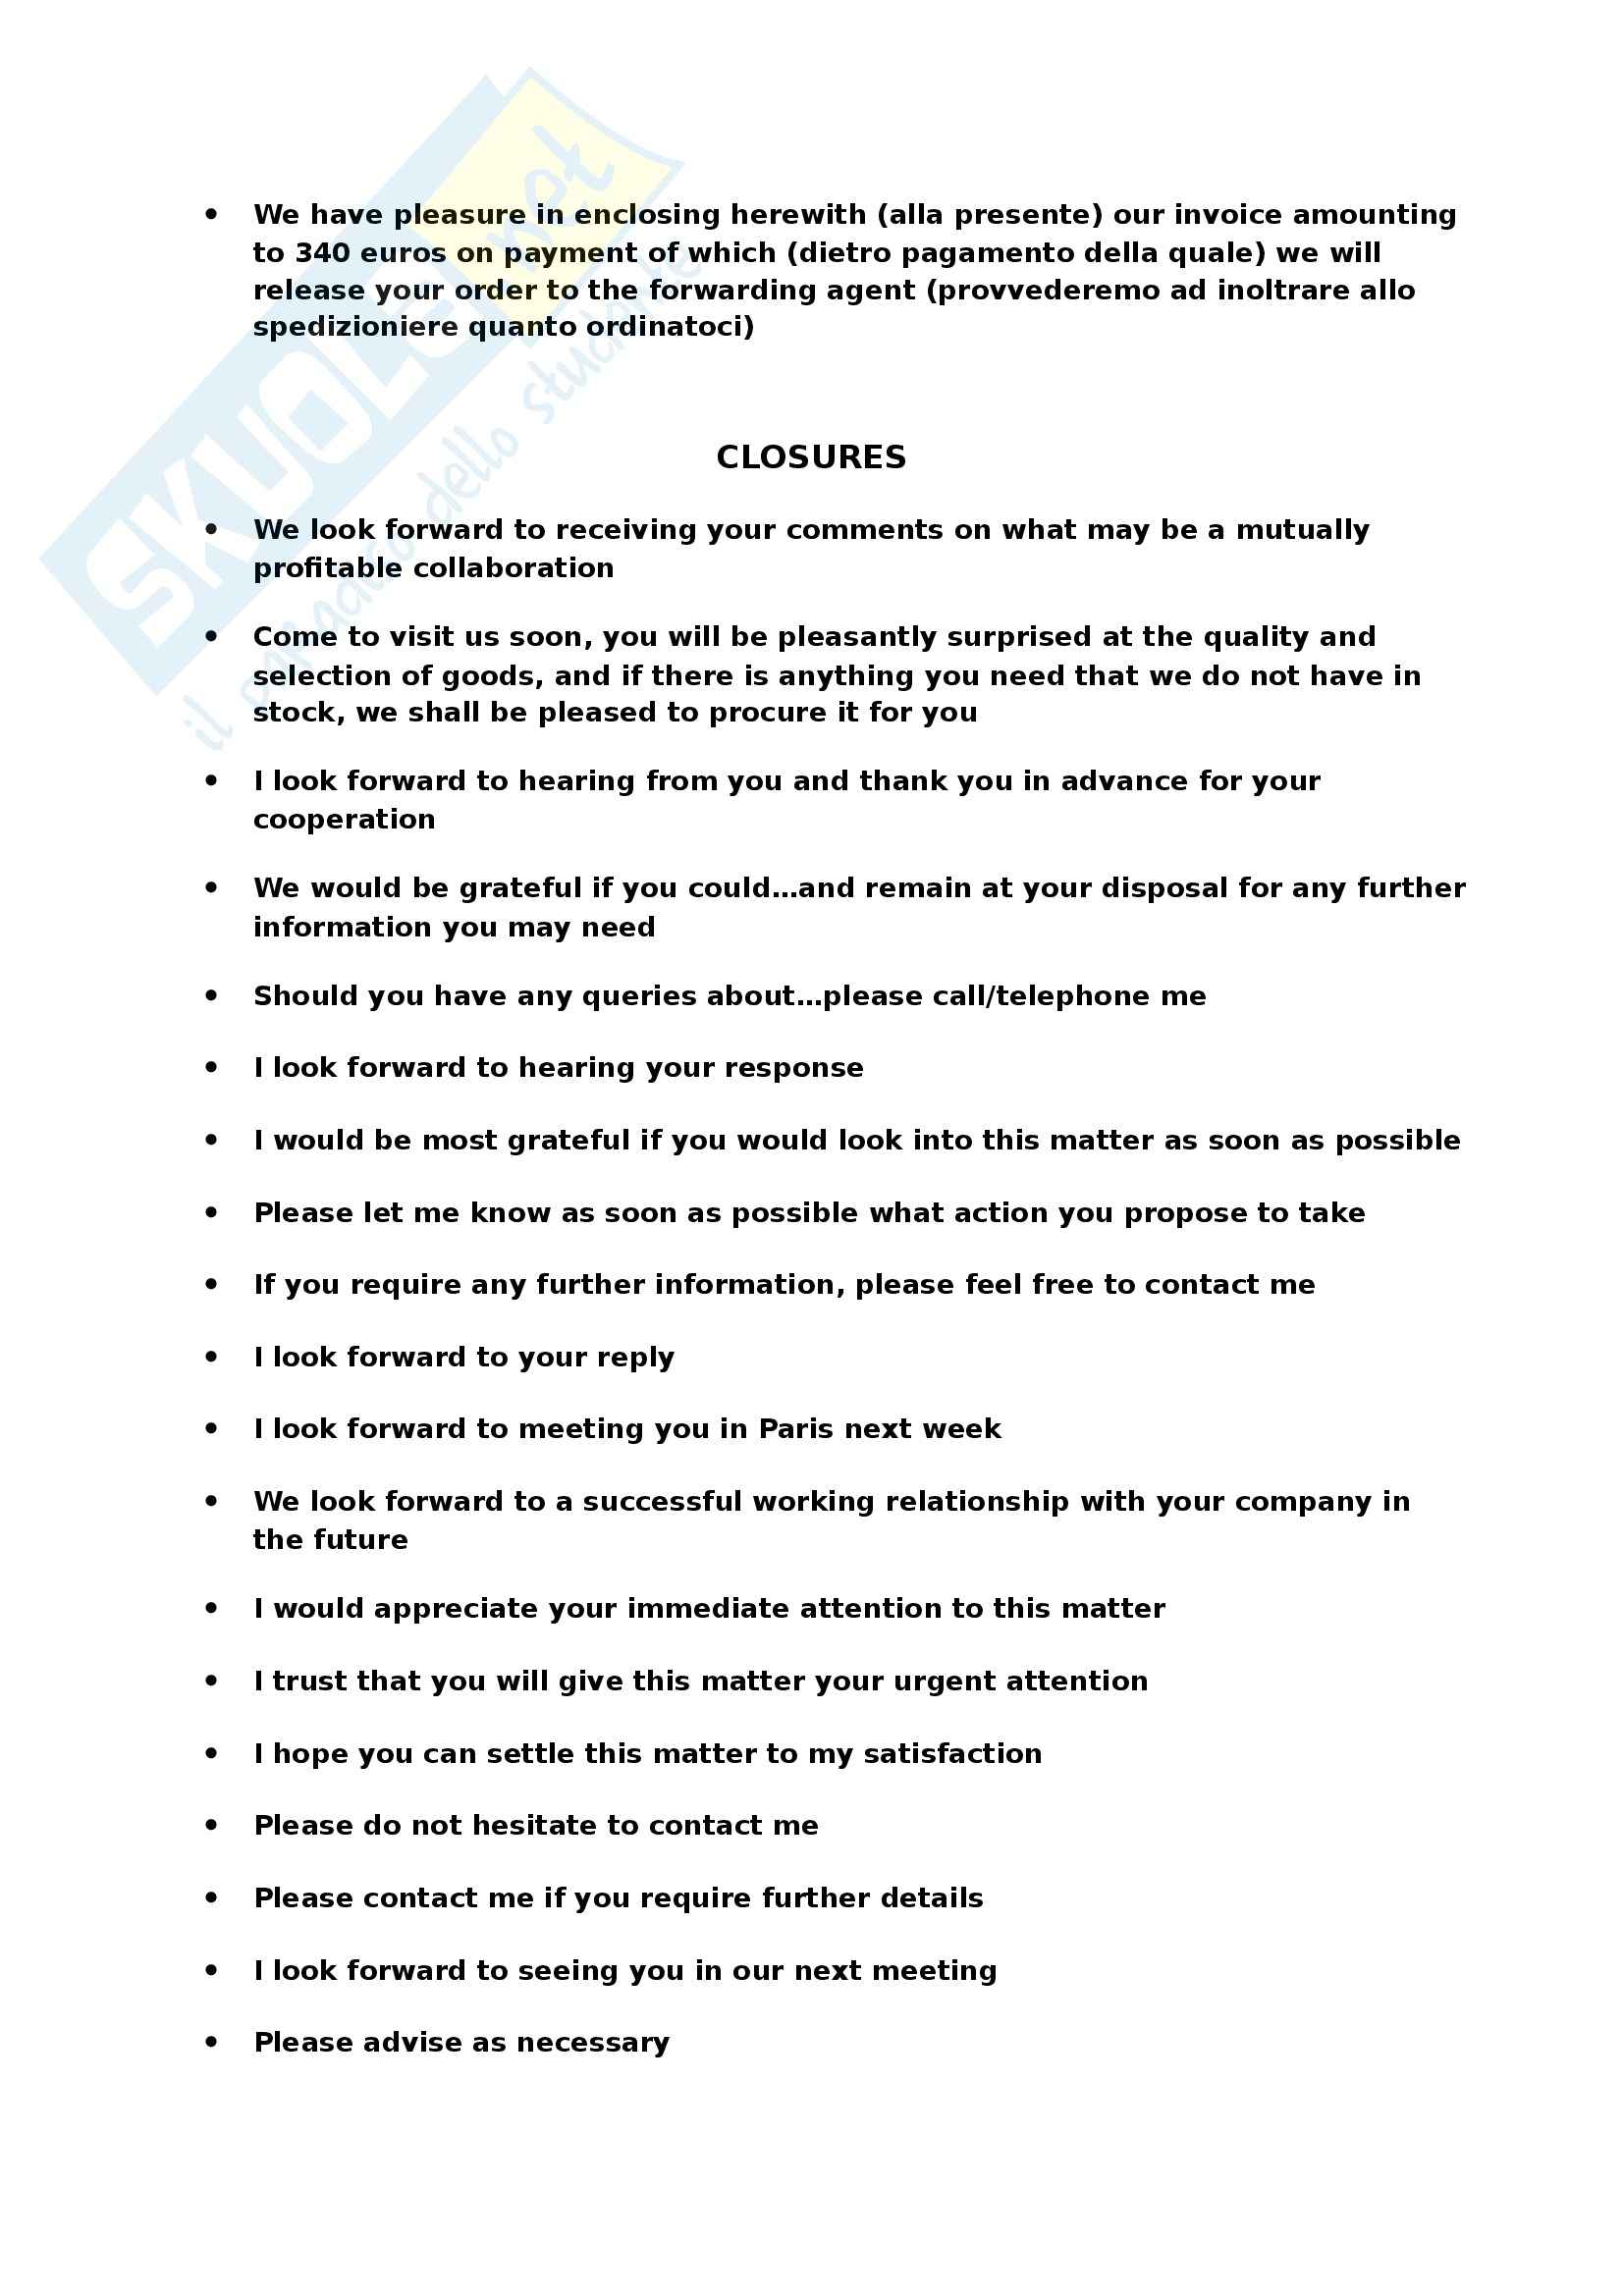 Inglese specialistico - Business letters Pag. 6